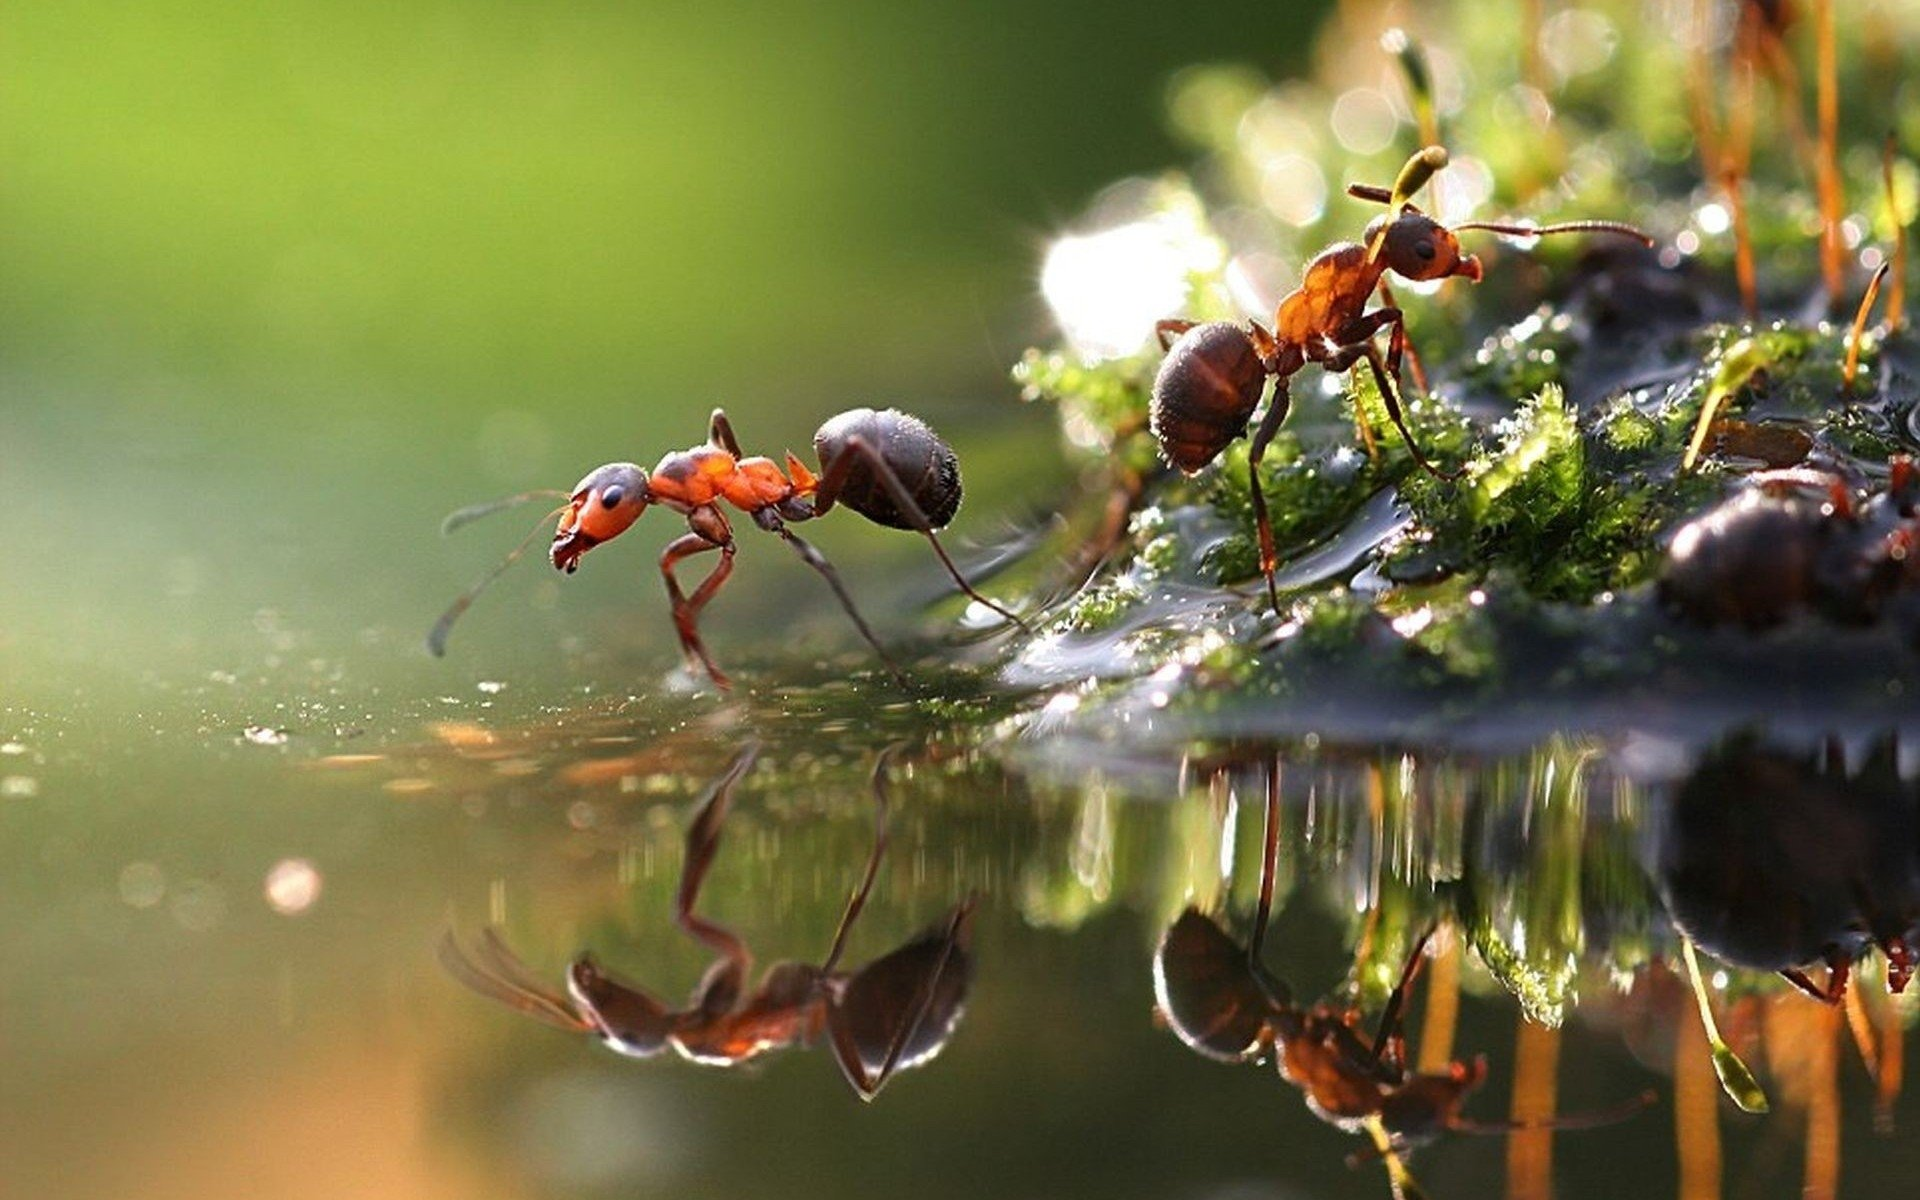 1920x1200 - Ant Wallpapers 1